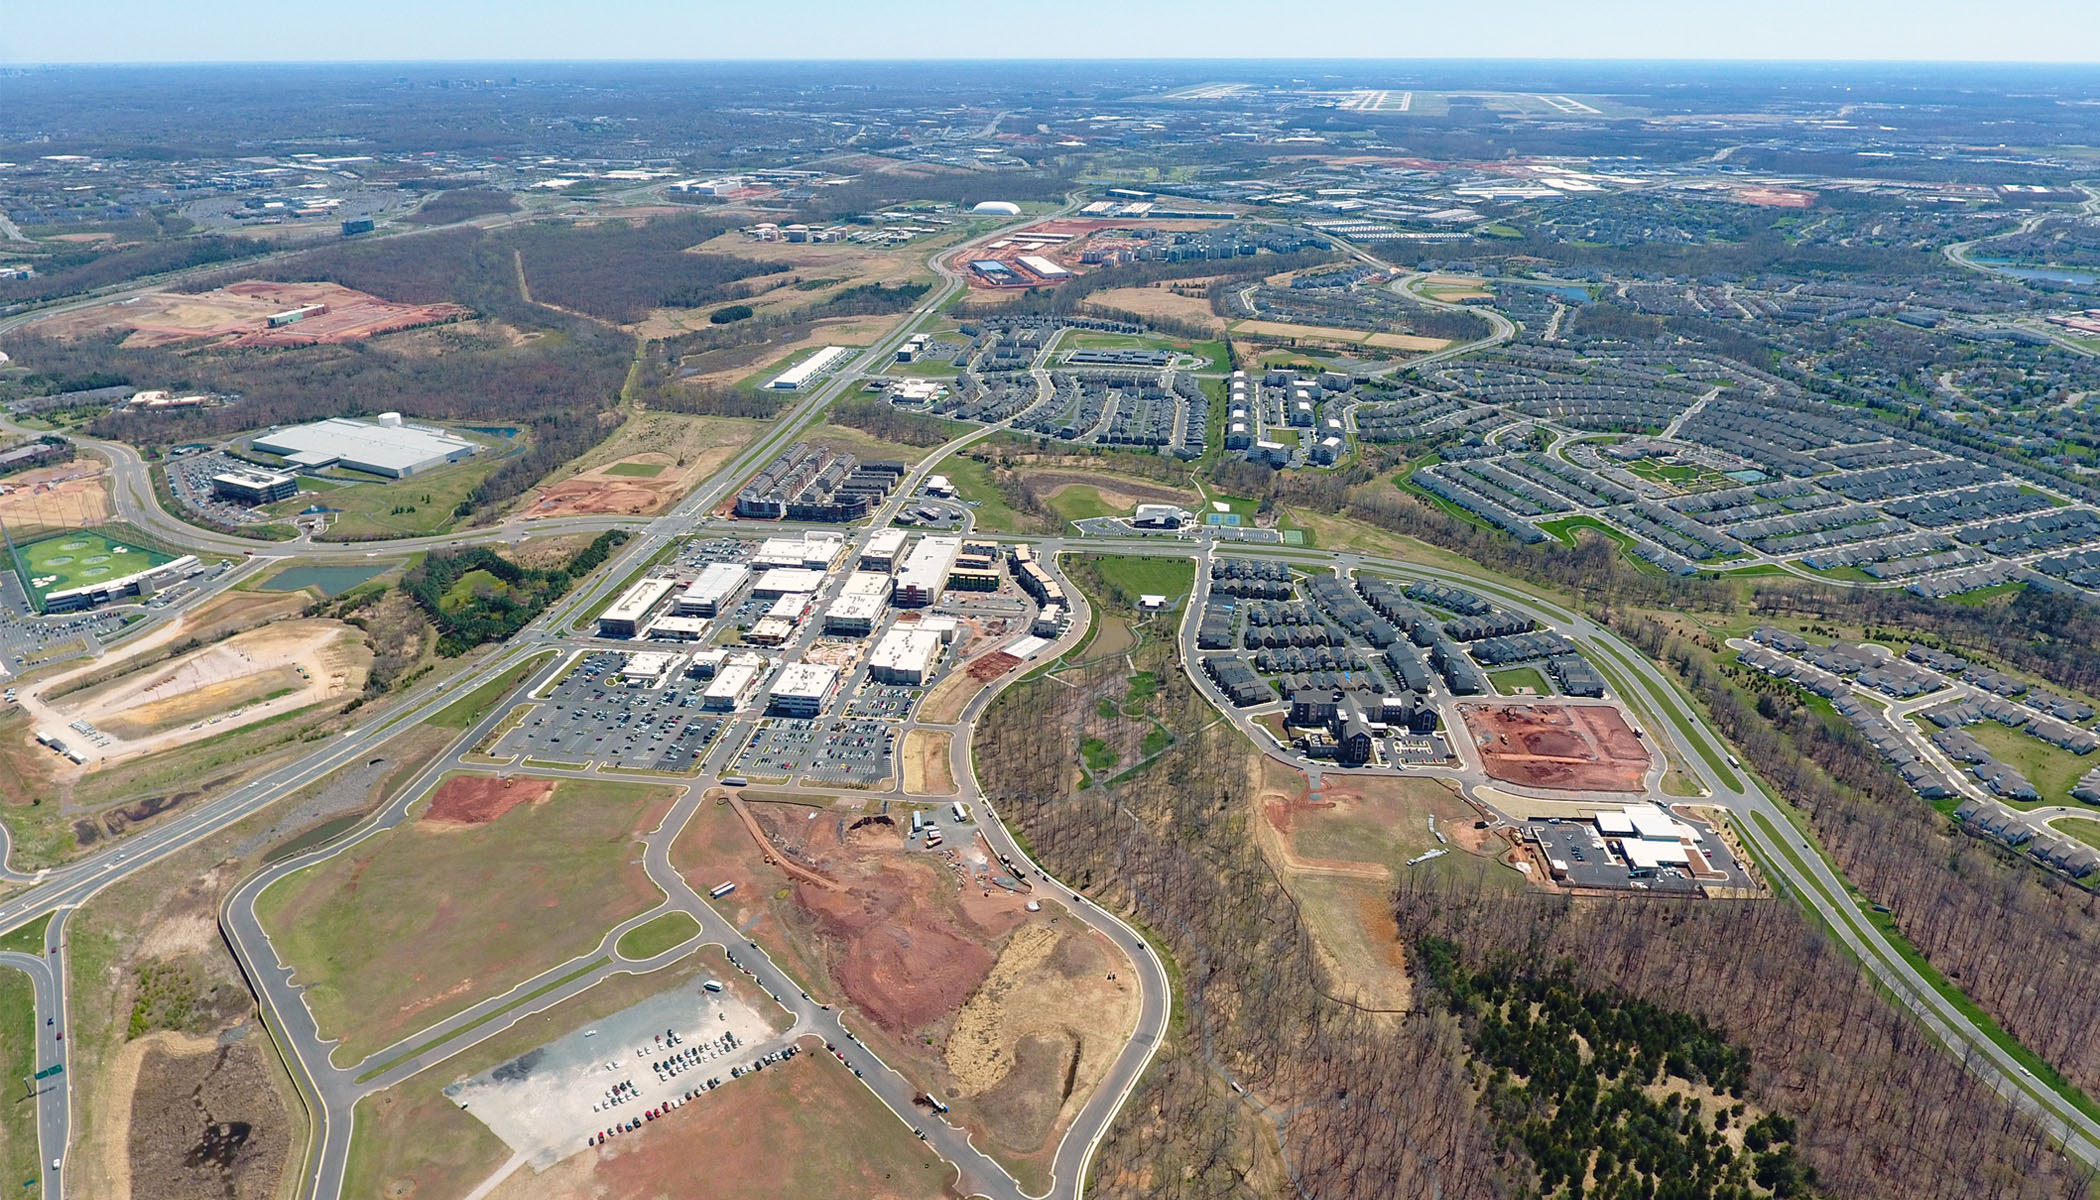 April 2018 aerial view above site looking south over the One Loudoun master plan and Dulles Airport beyond